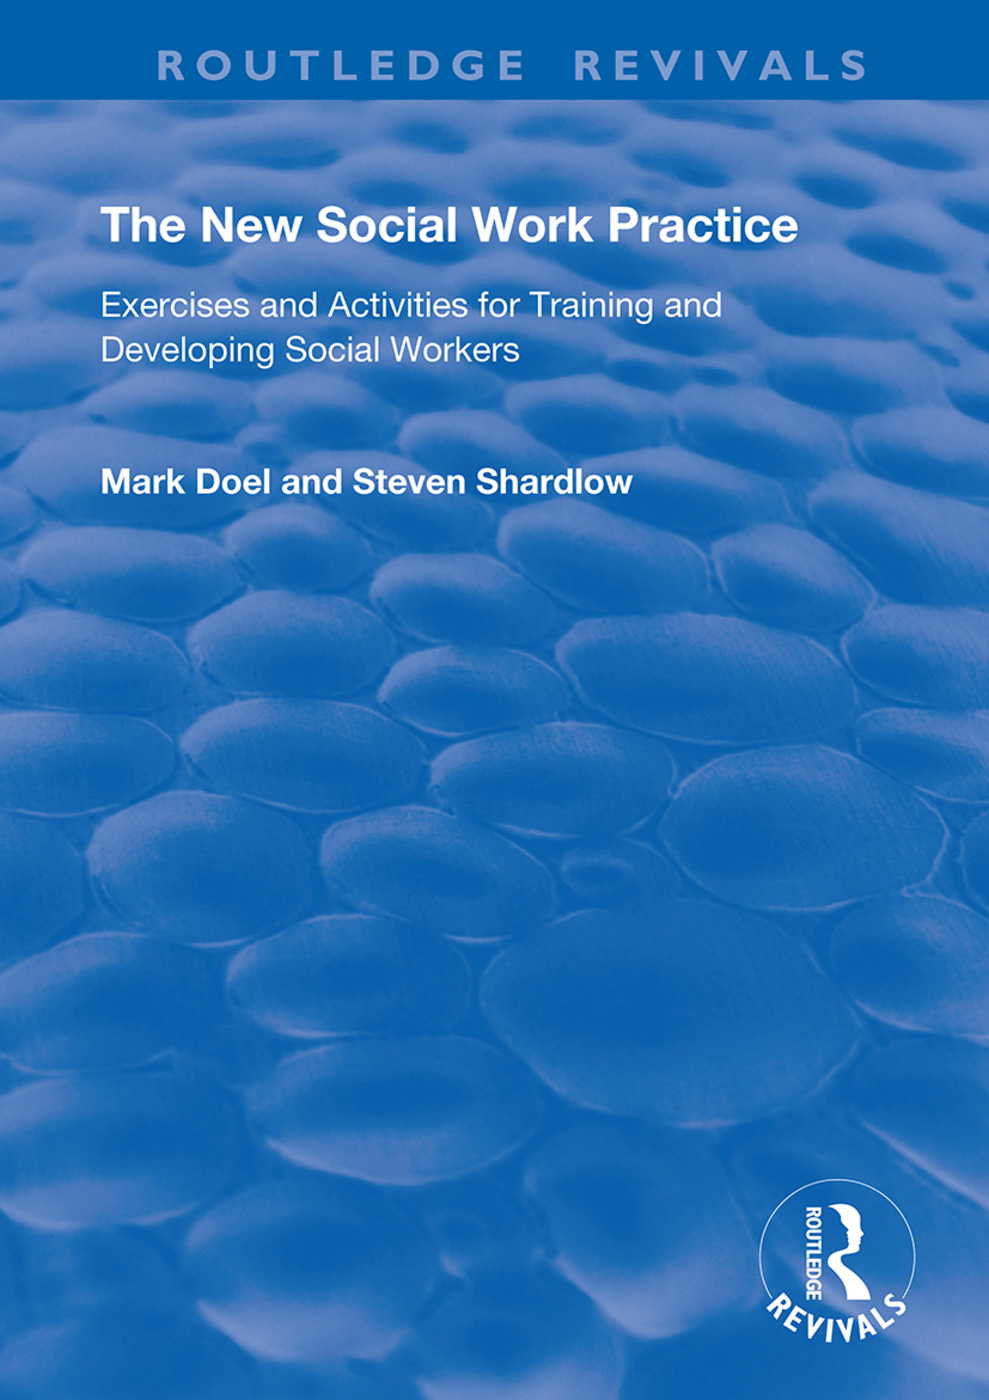 The New Social Work Practice: Exercises and Activities for Training and Developing Social Workers book cover